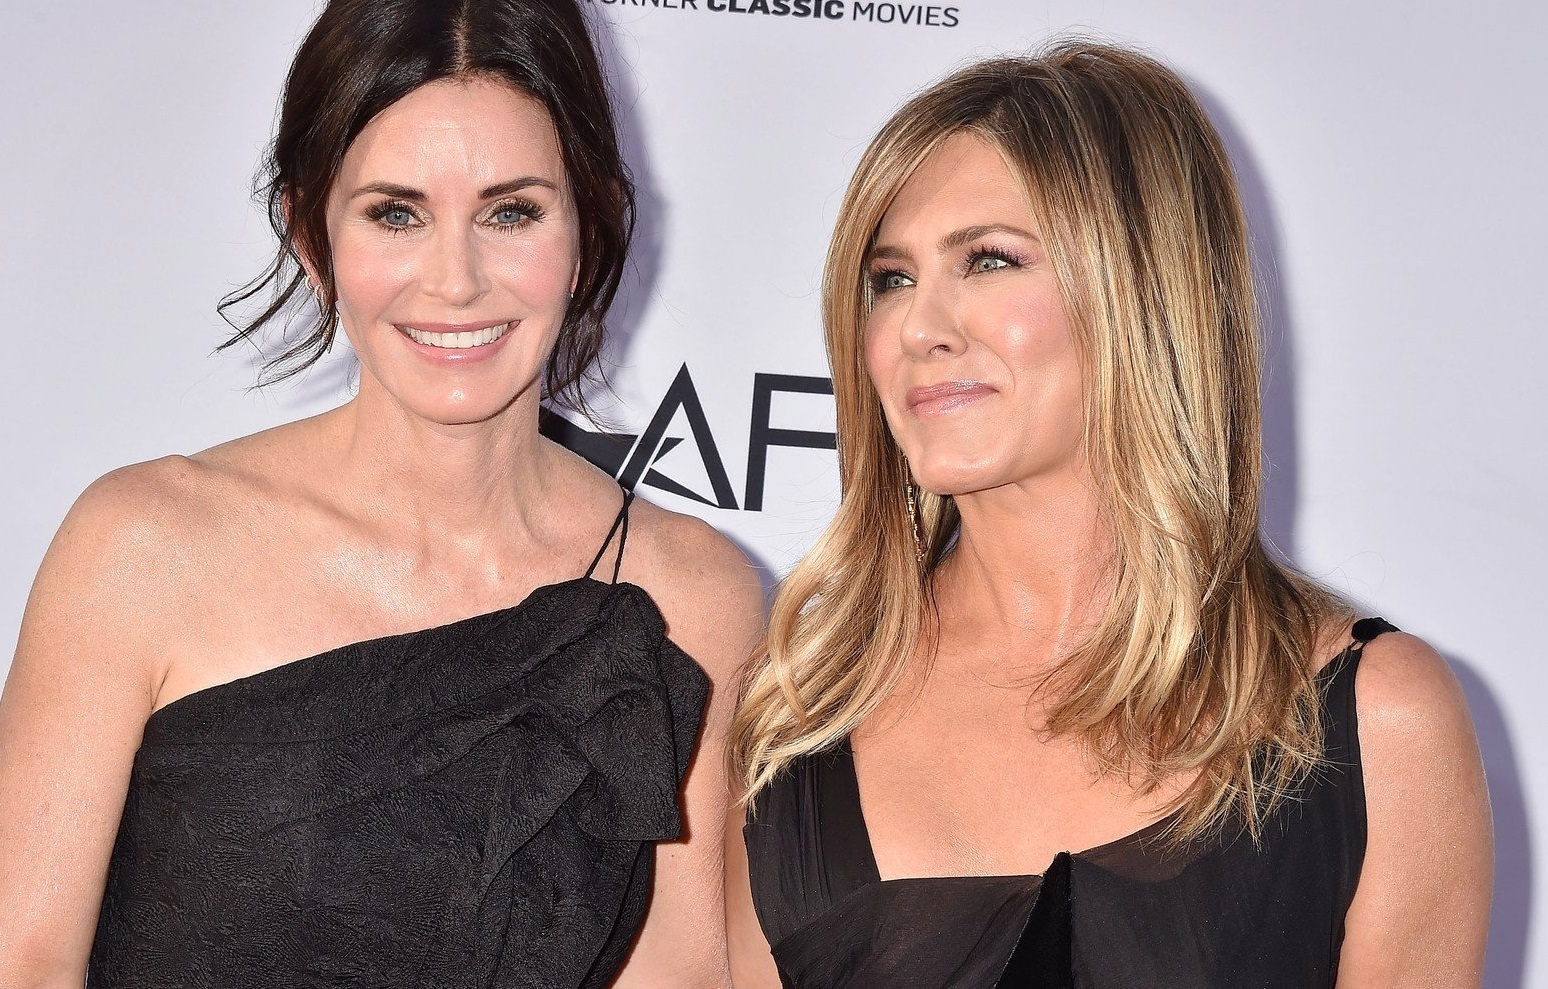 HOLLYWOOD, CA - JUNE 07: Courtney Cox (L) and Jennifer Aniston arrive at the American Film Institute's 46th Life Achievement Award Gala Tribute To George Clooney at the Dolby Theatre on June 7, 2018 in Hollywood, California. © Joe Sutter, PacificCoastNews. Los Angeles Office (PCN): +1 310.822.0419 UK Office (Photoshot): +44 (0) 20 7421 6000 sales@pacificcoastnews.com FEE MUST BE AGREED PRIOR TO USAGE